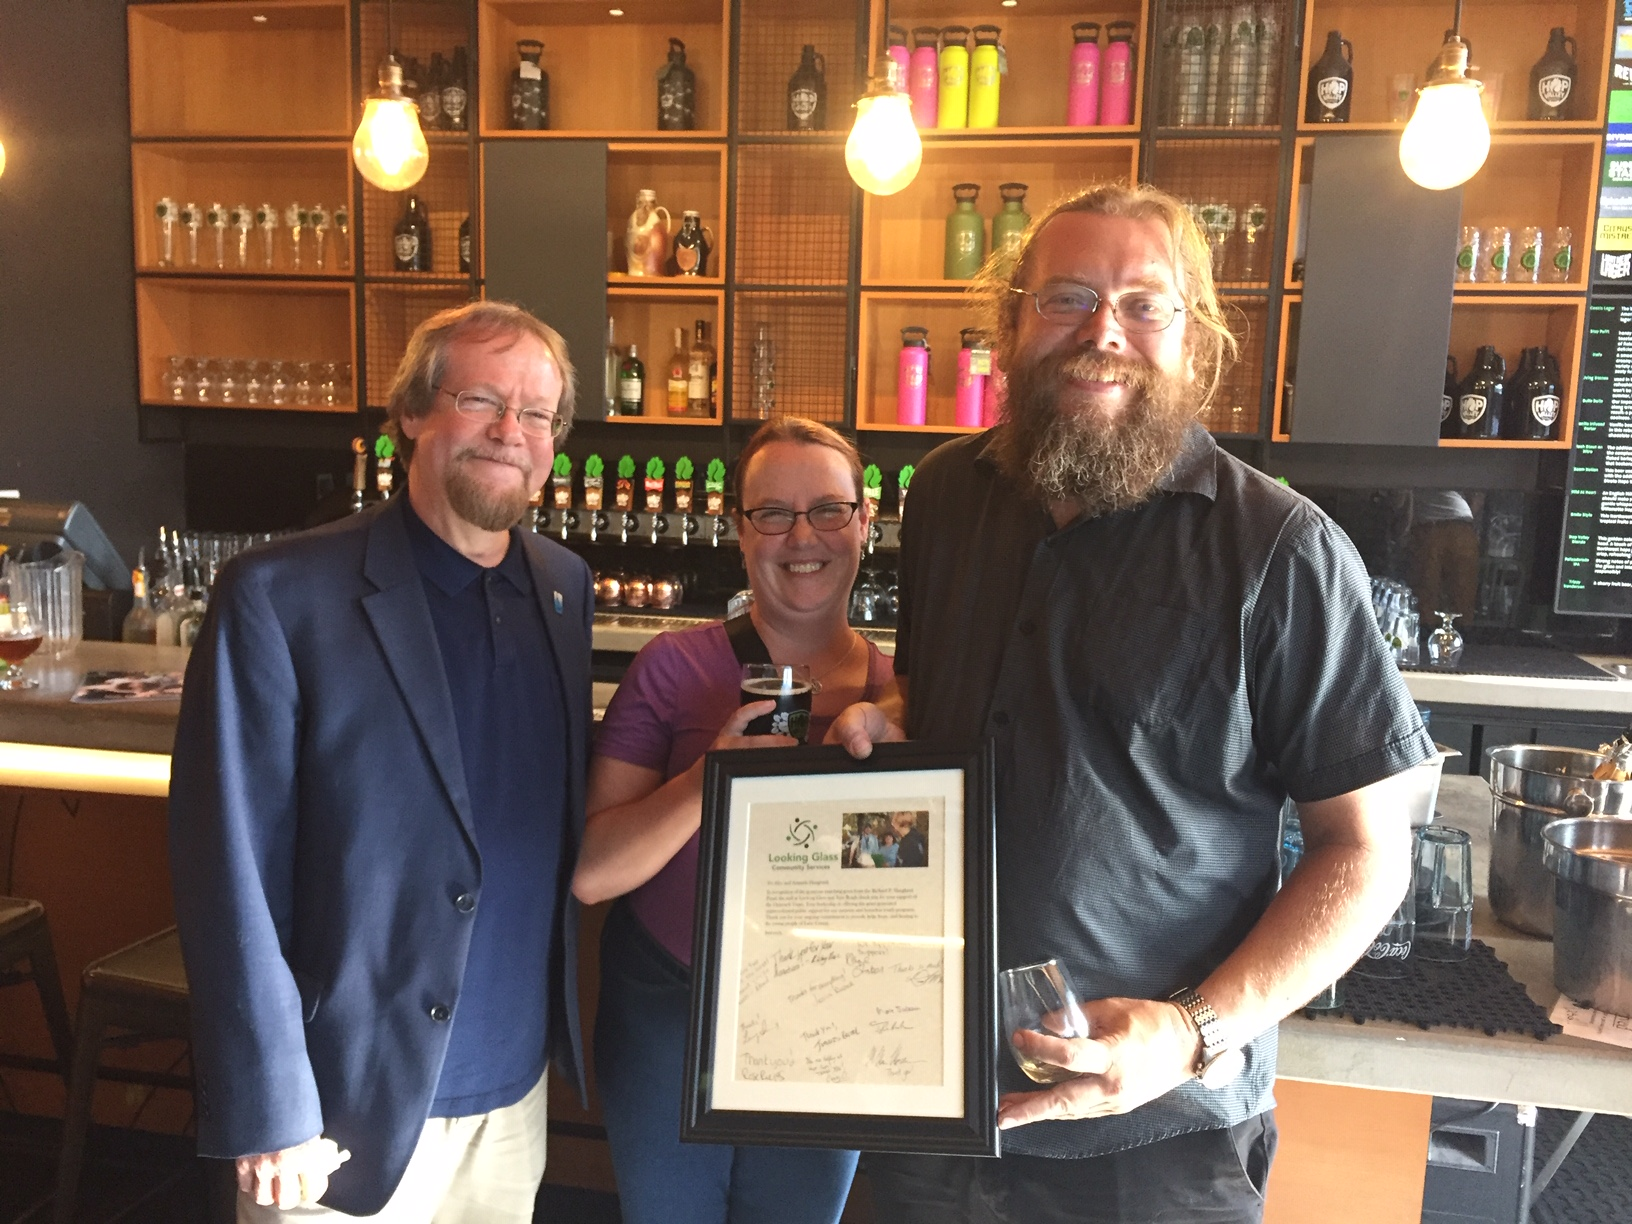 Looking Glass CEO and President Craig Opperman (left) poses with Amy and Alex Haugland after presenting them with a framed thank you letter in appreciation of their support in a $50,000 donation match challenge gift during a celebration gathering at Hop Valley Brewing on Tuesday, July 16th.